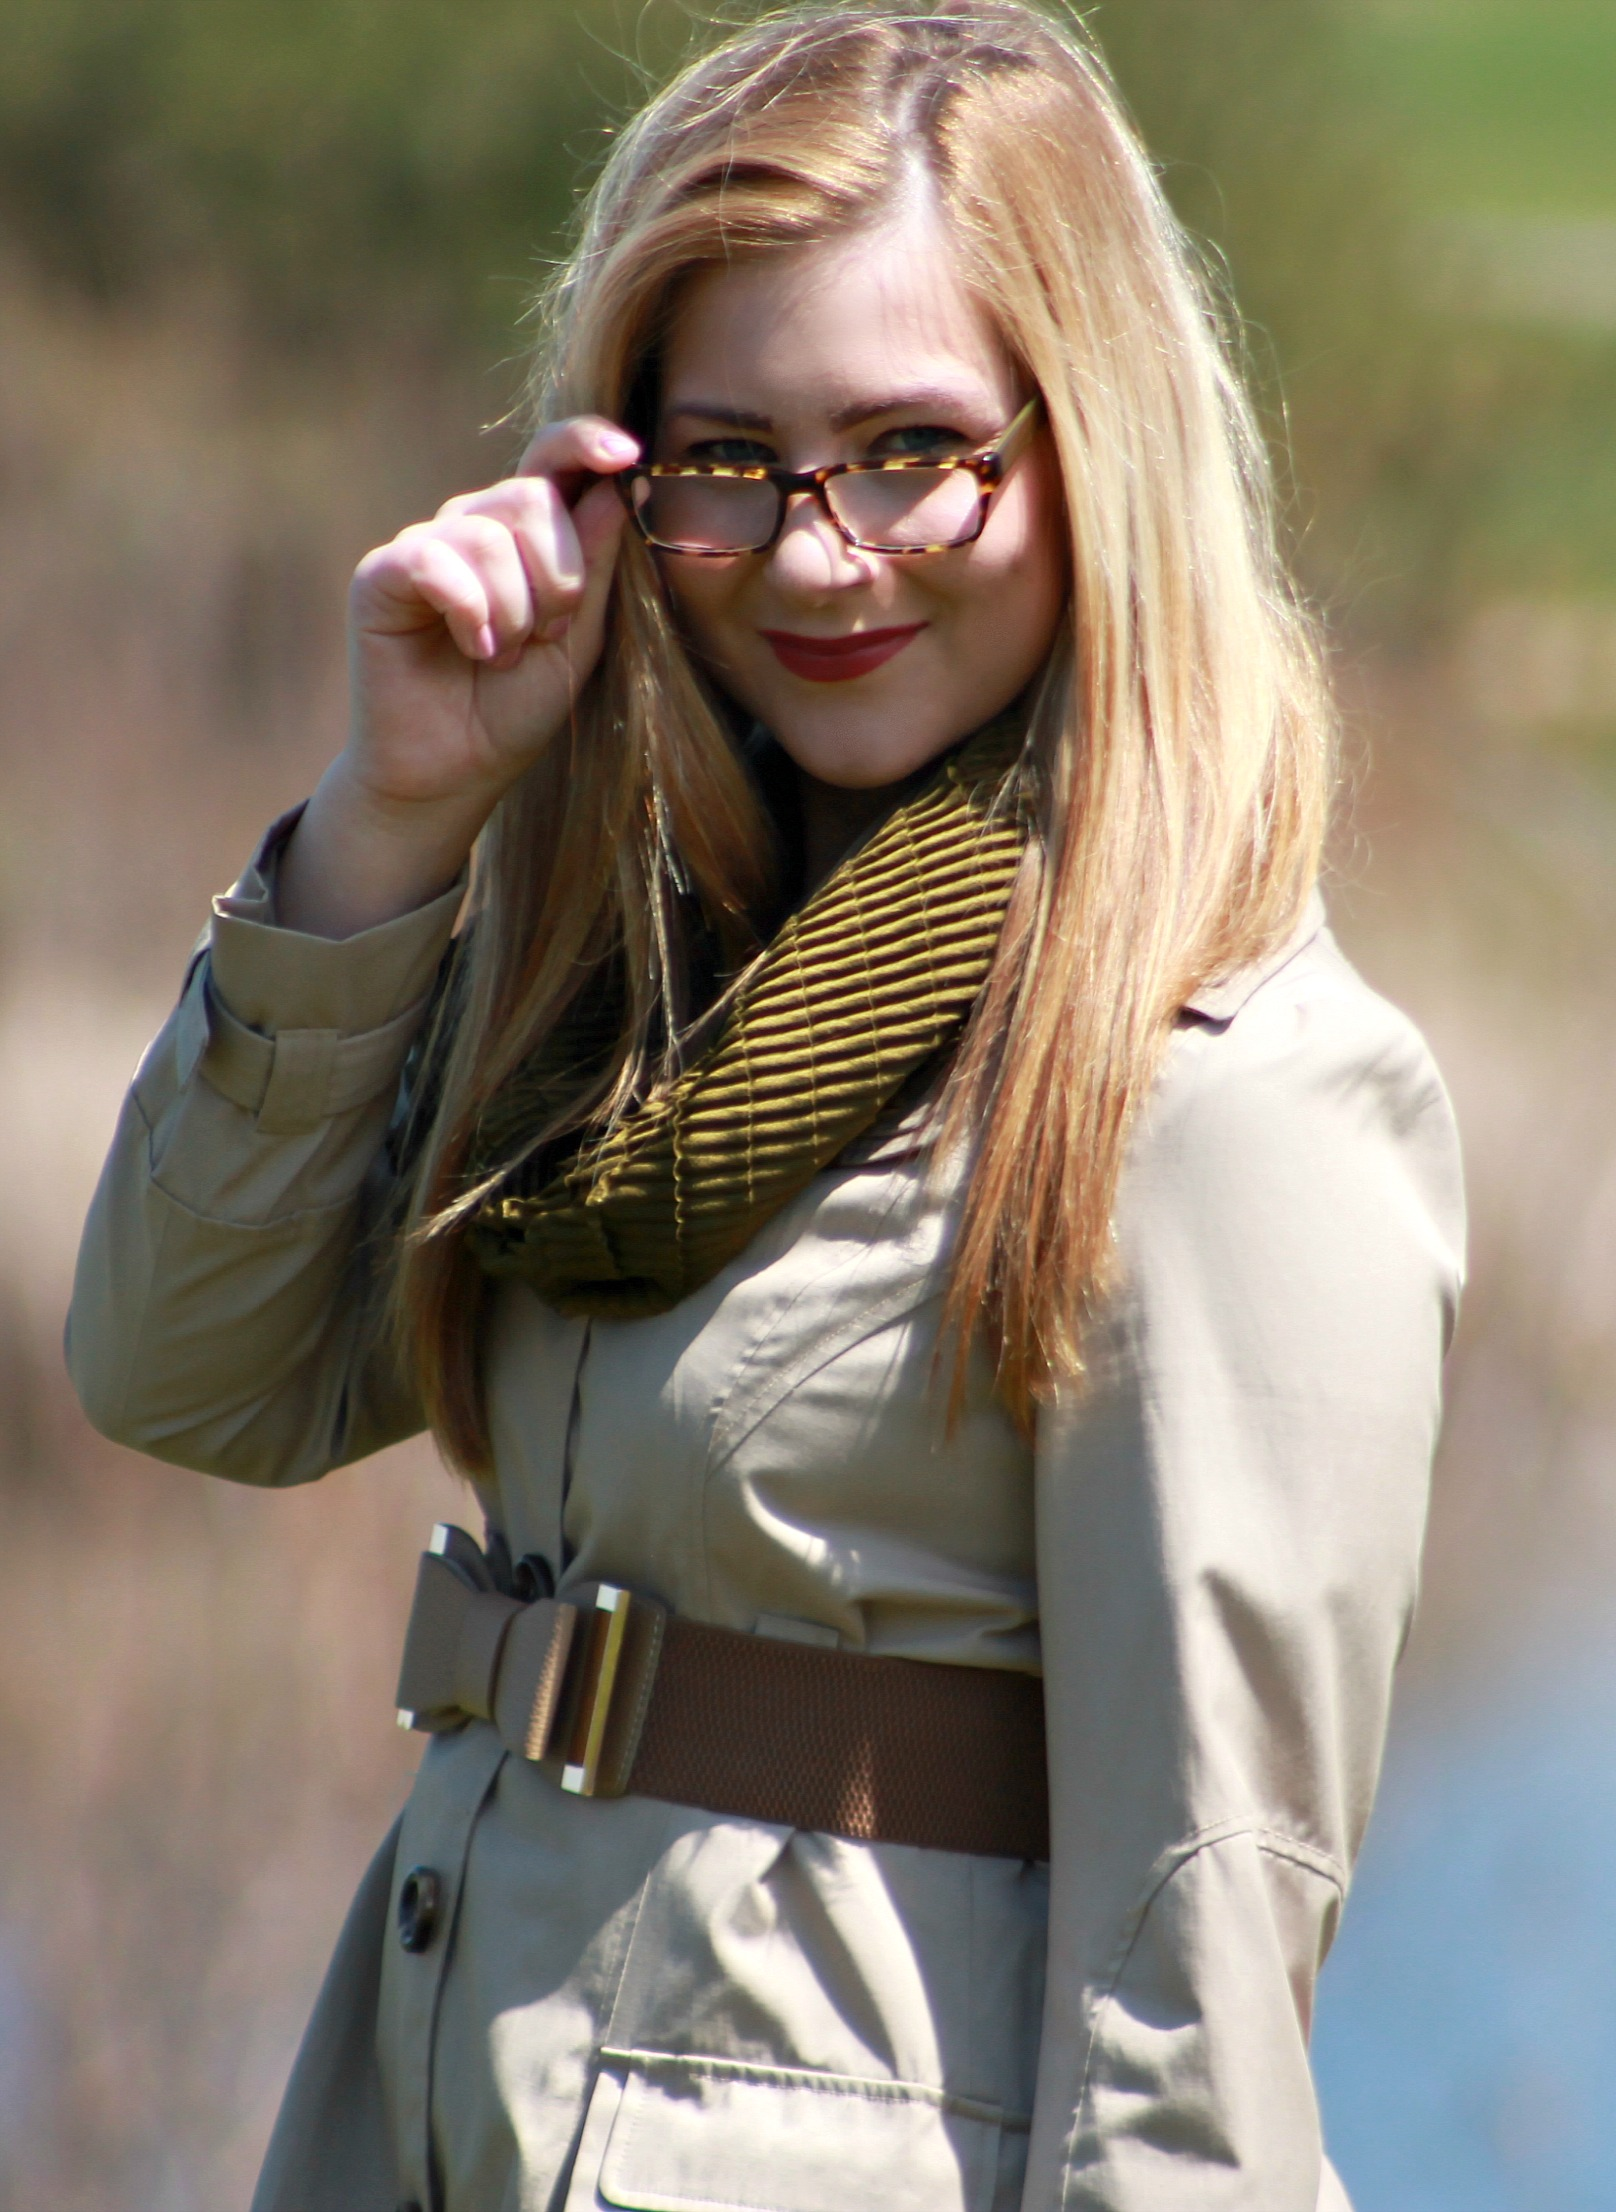 Olive green scarf + bow belt